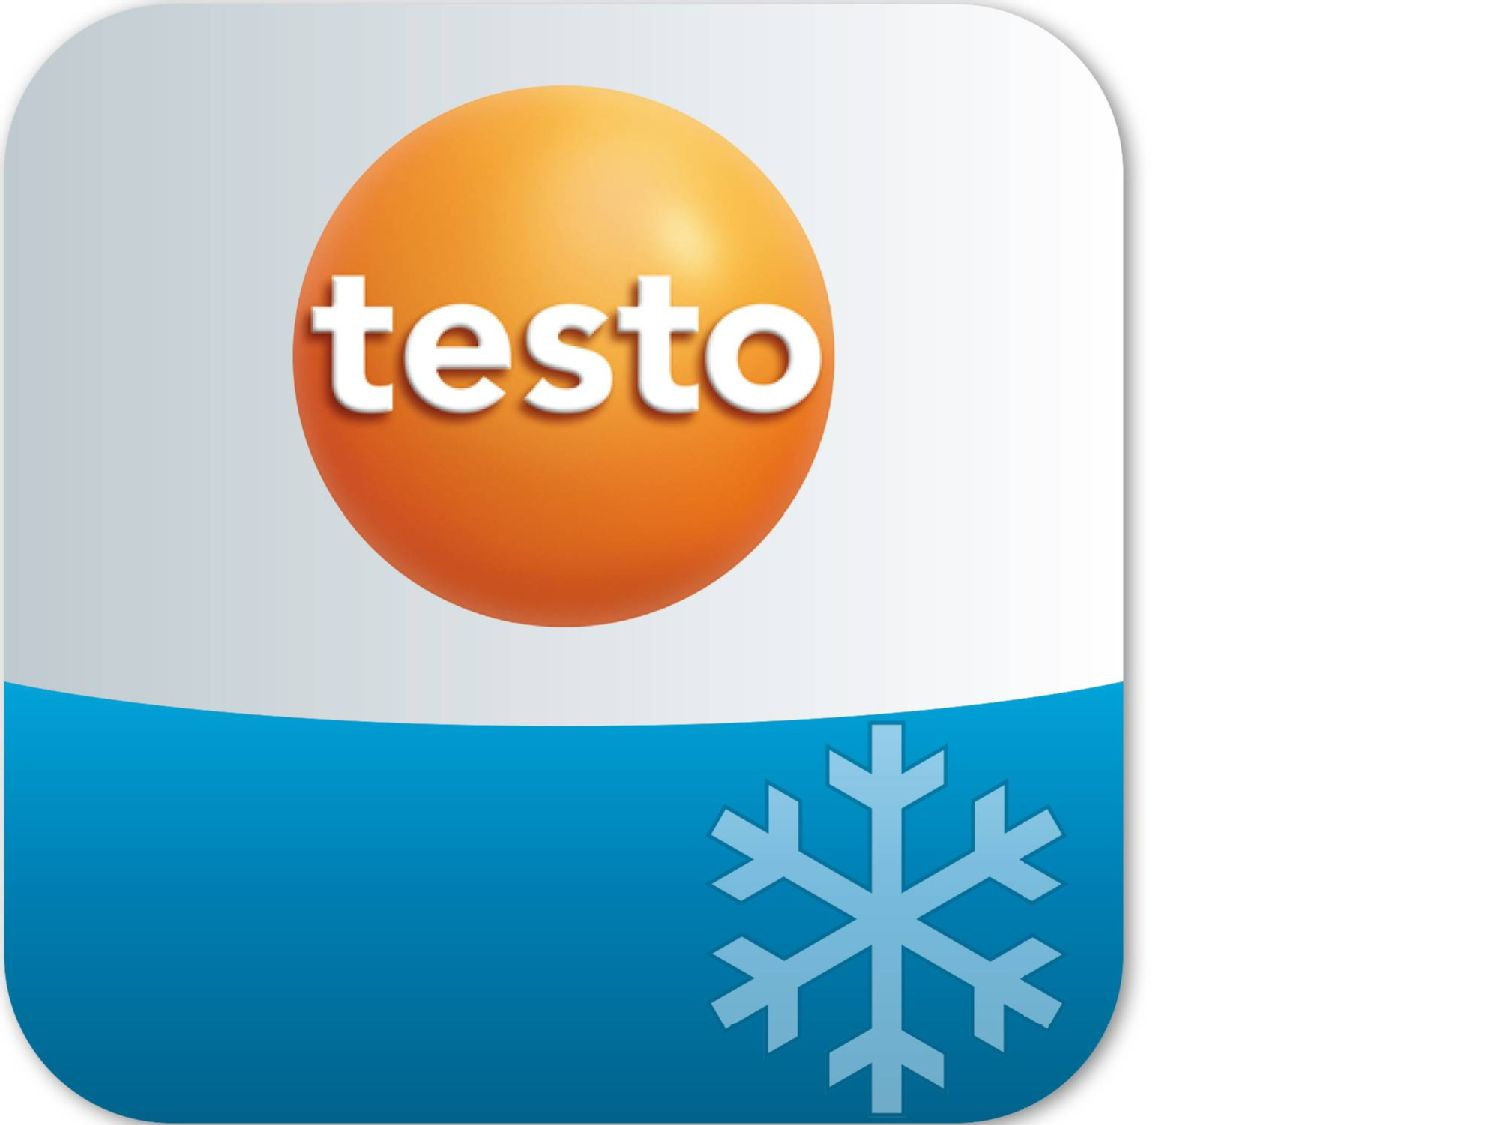 Refrigeration service with the testo Refrigeration App